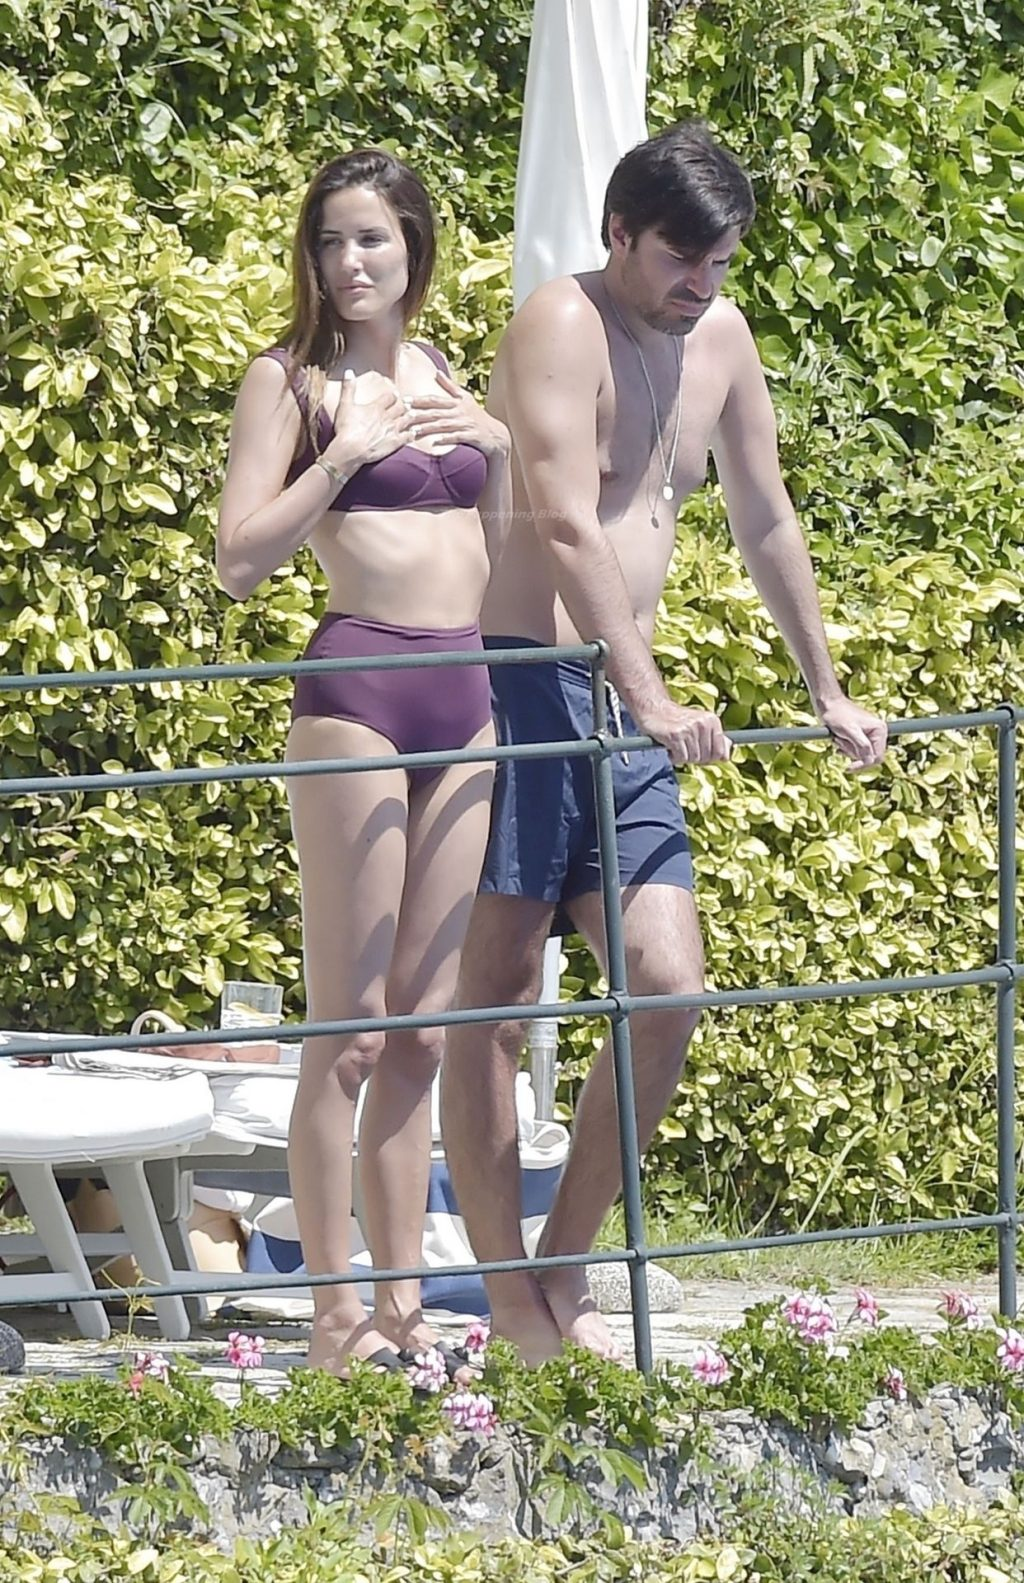 Alex Riviere & Christian Sieber Show Some PDA Out on Their Italian holiday (31 Photos)